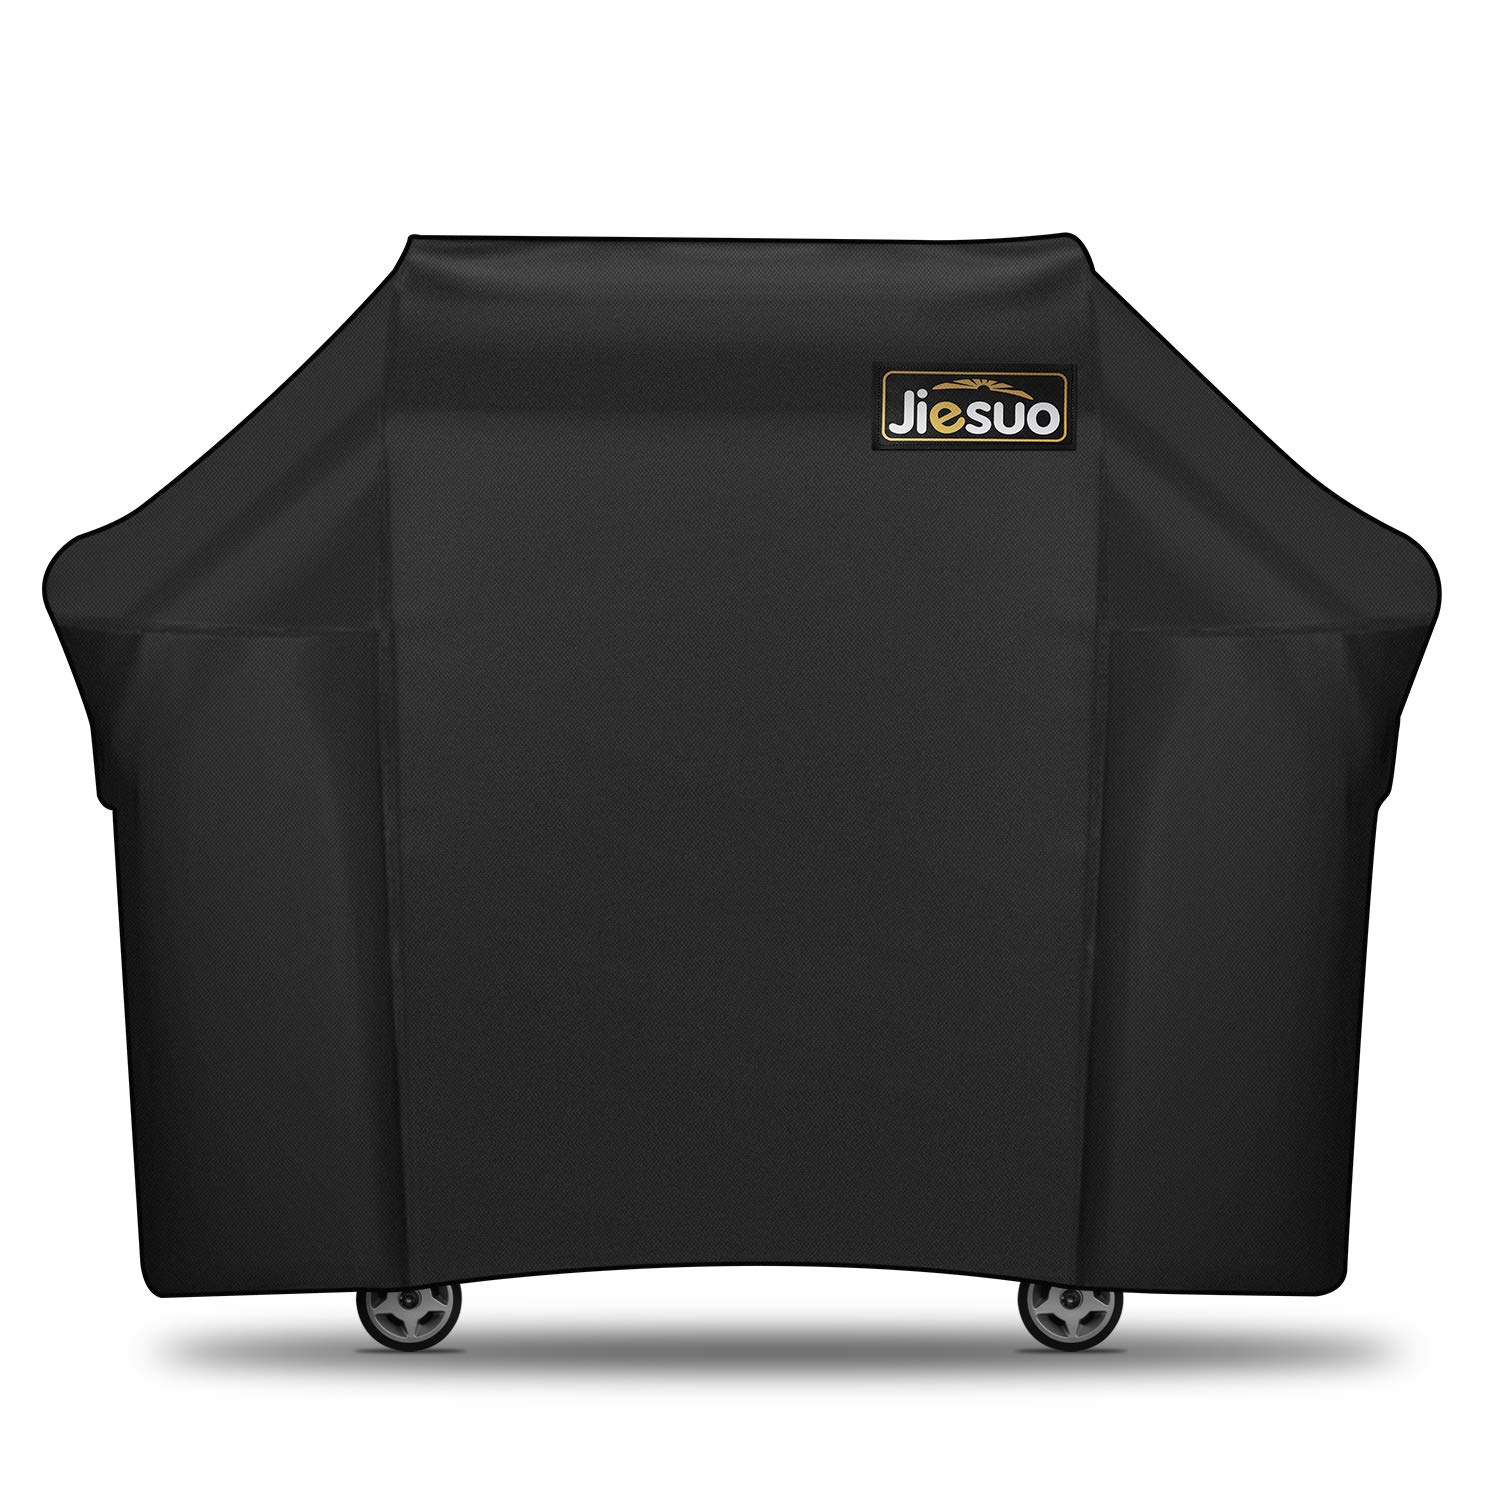 BBQ Gas Grill Cover for Weber Genesis: Heavy Duty Waterproof 60 Inch 3 Burner Weather Resistant Ripstop UV Resistant Outdoor Barbeque Grill Covers By JIESUO